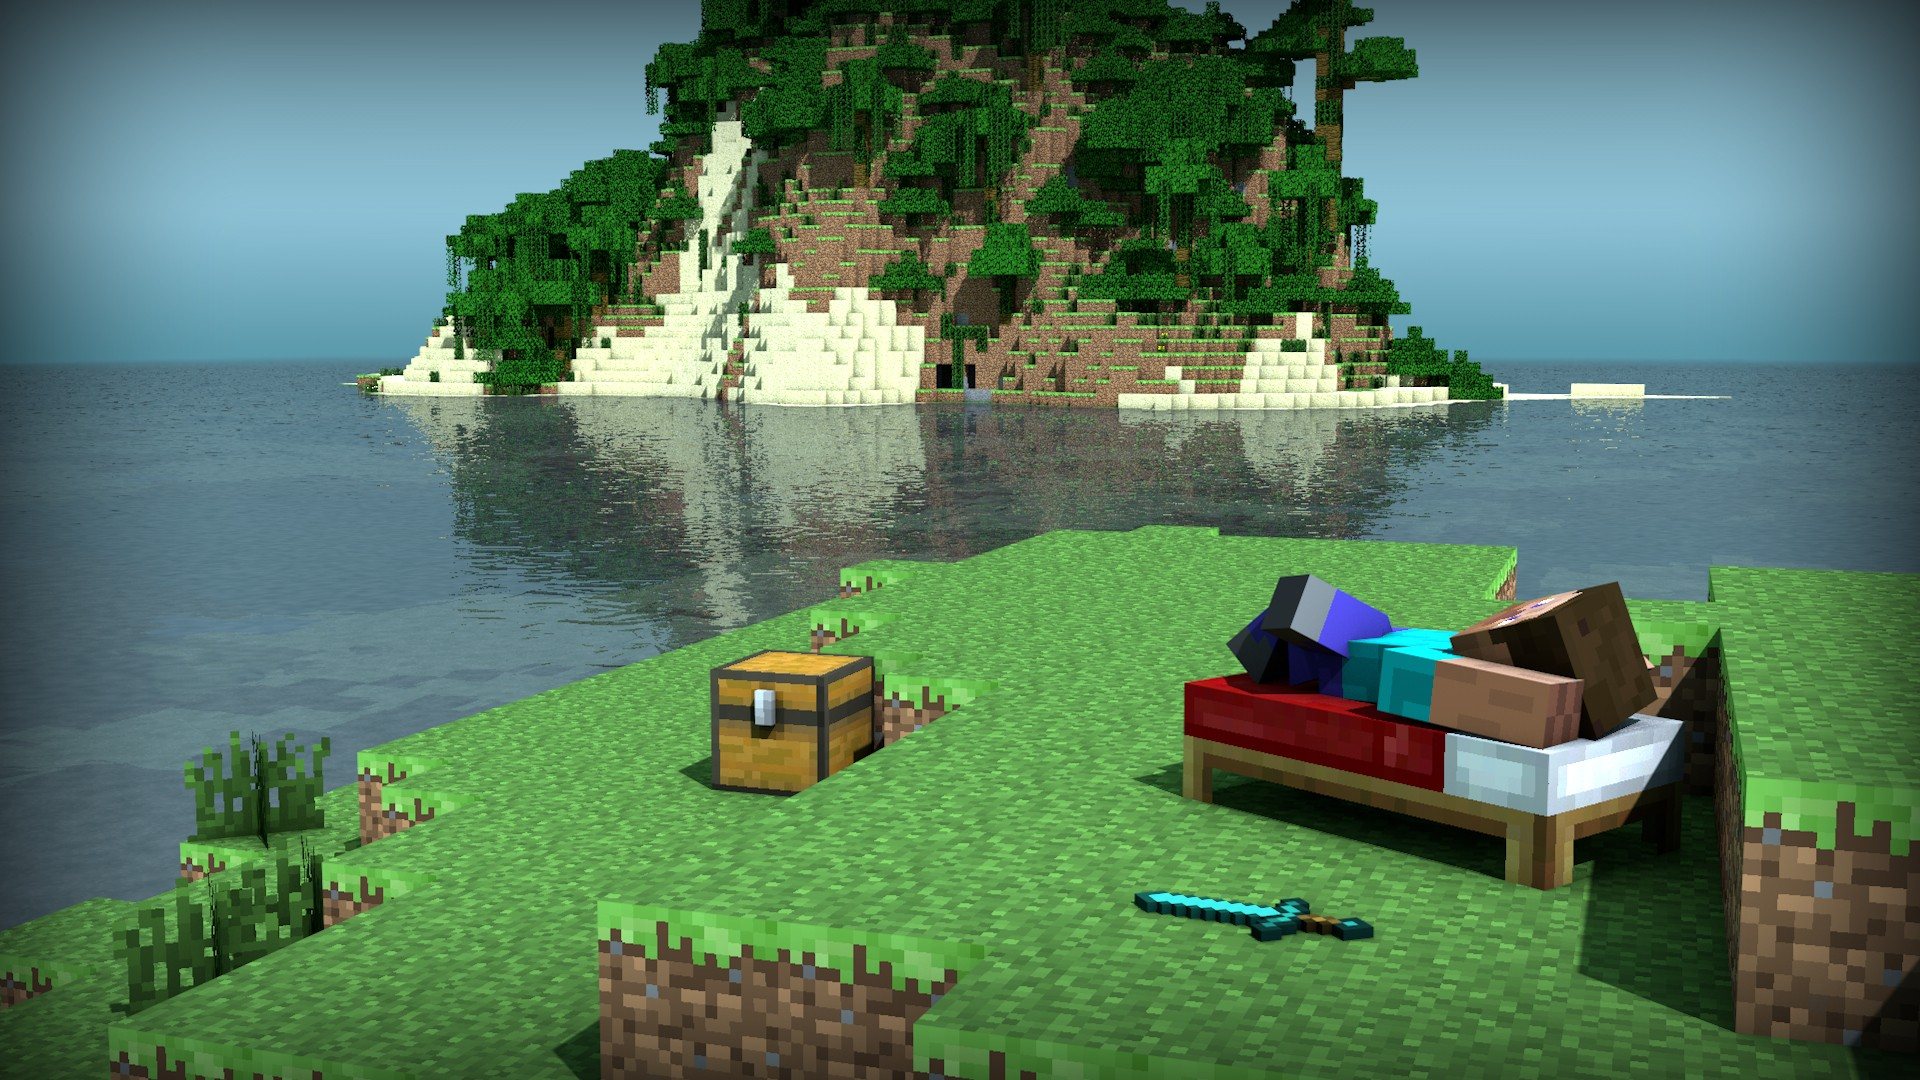 minecraft mods that change the game